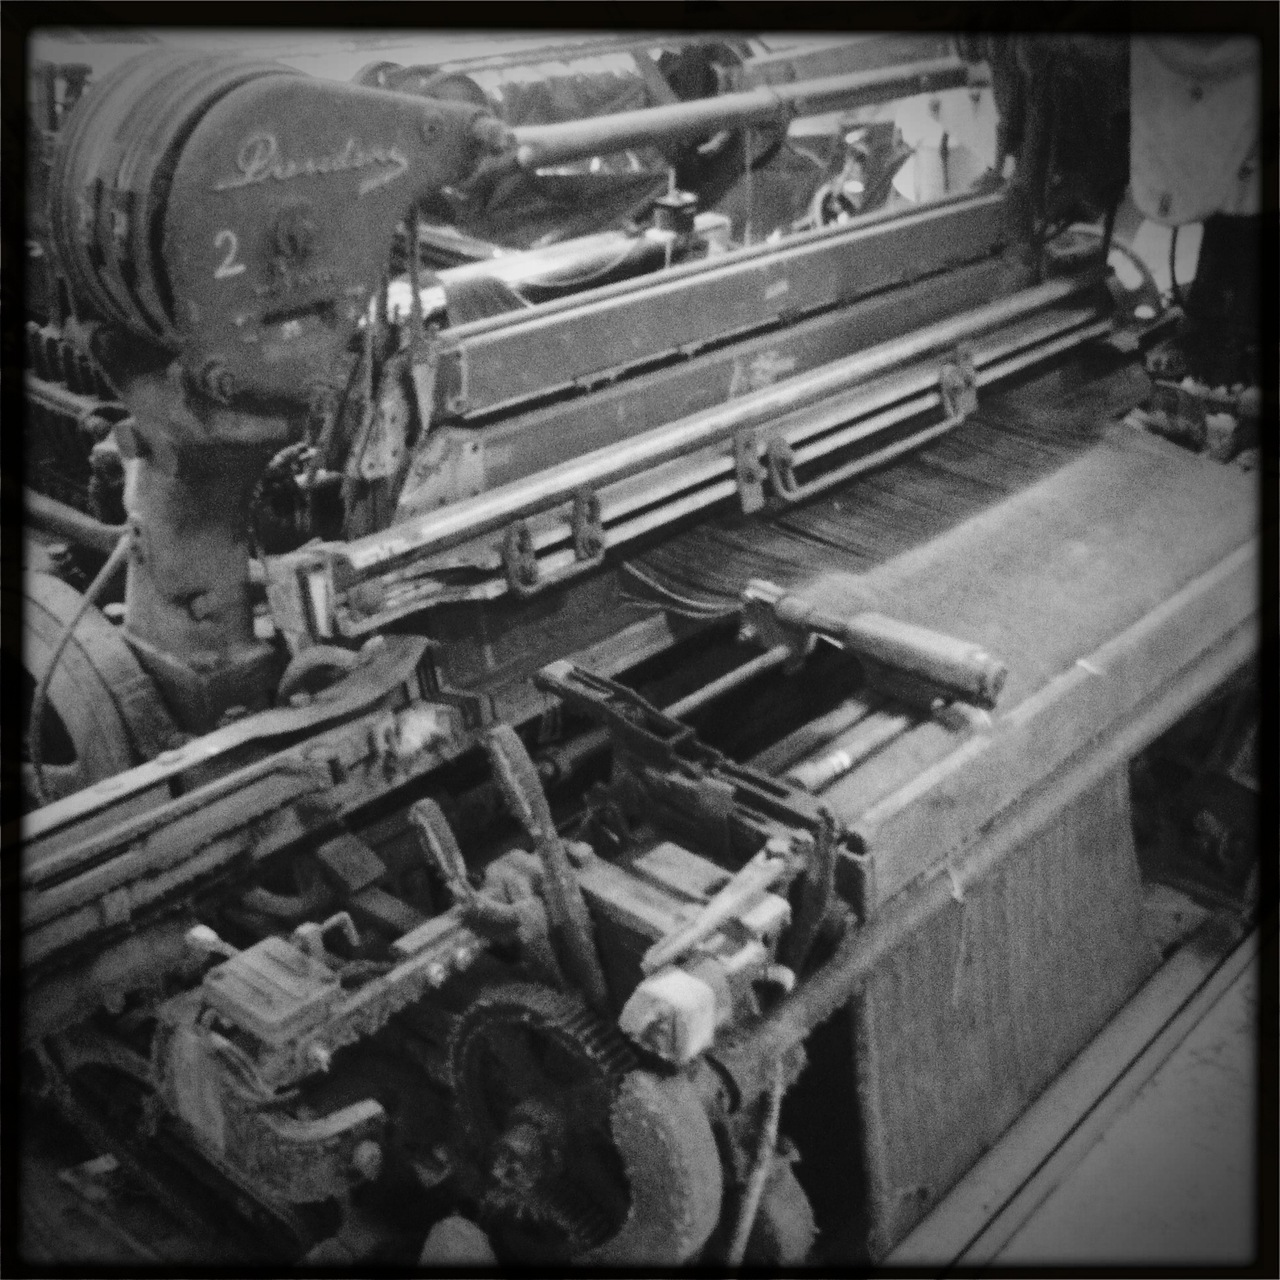 denimlaboratory: retired shuttle loom machines @ Italdenim Great shot of an old shuttle loom. Love this. They sound like old printing presses when they are running. Unbelievably loud. They all used the vintage shuttle looms and moved very slow.